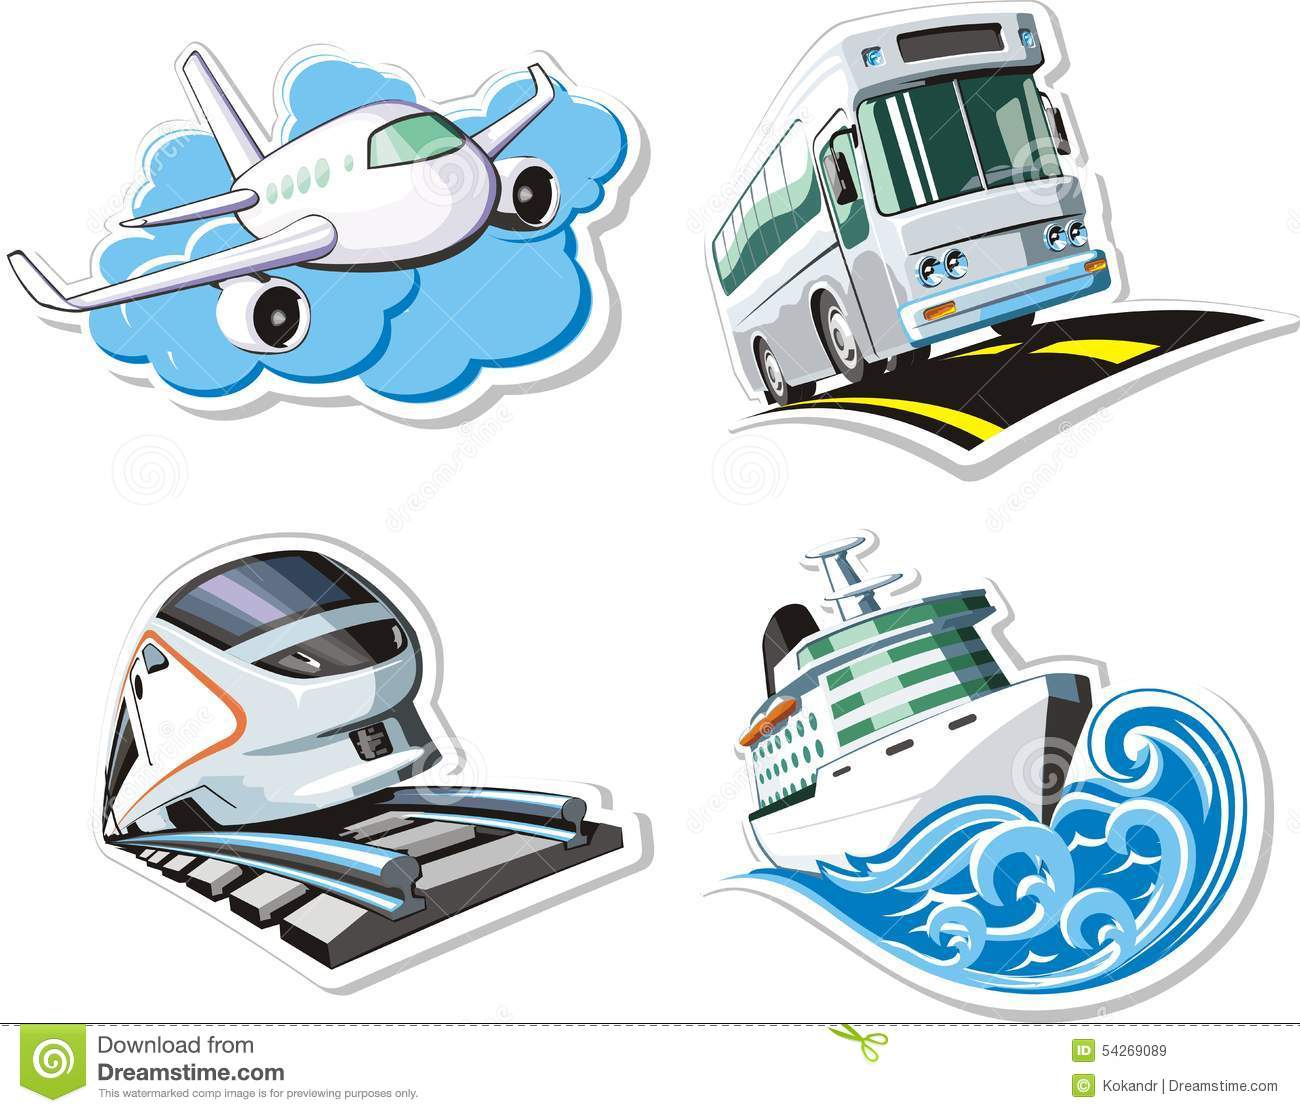 Means of Transport - Means of Transport